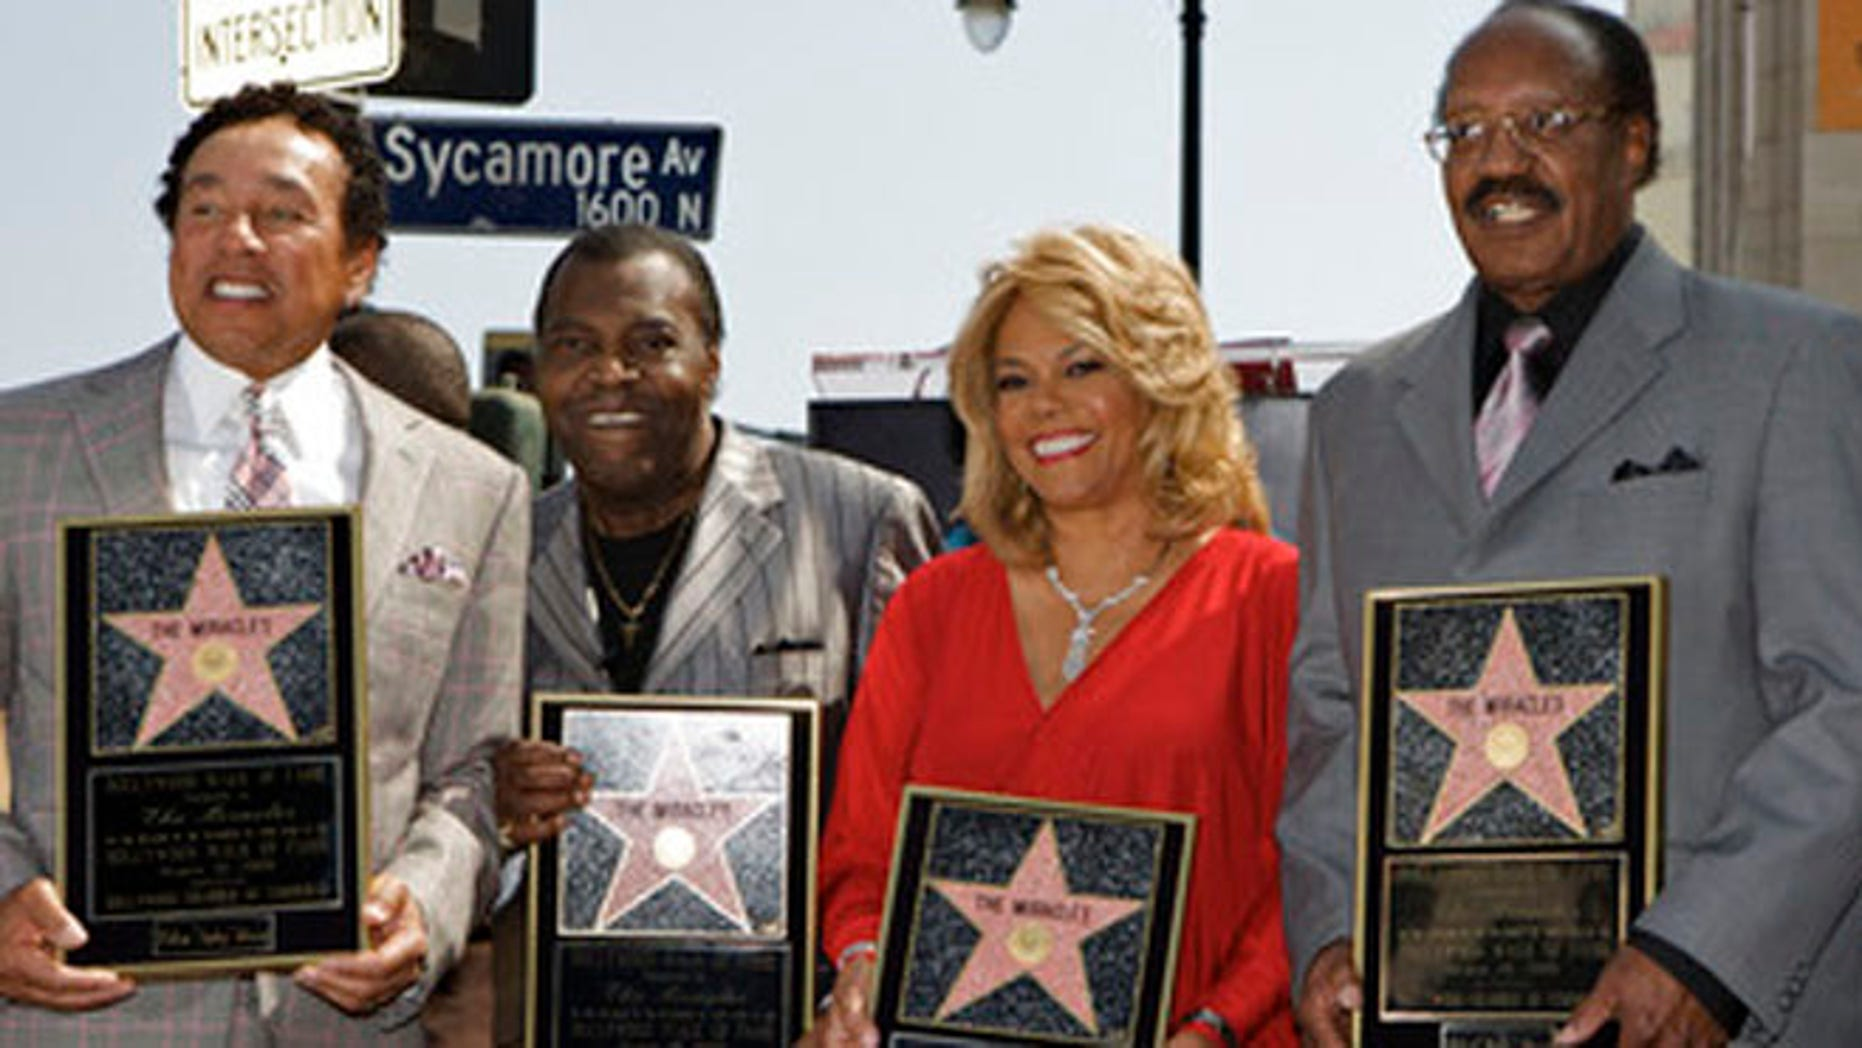 The Miracles, from left: Smokey Robinson, Warren Moore, Claudette Robinson, and Bobby Rogers in 2009.